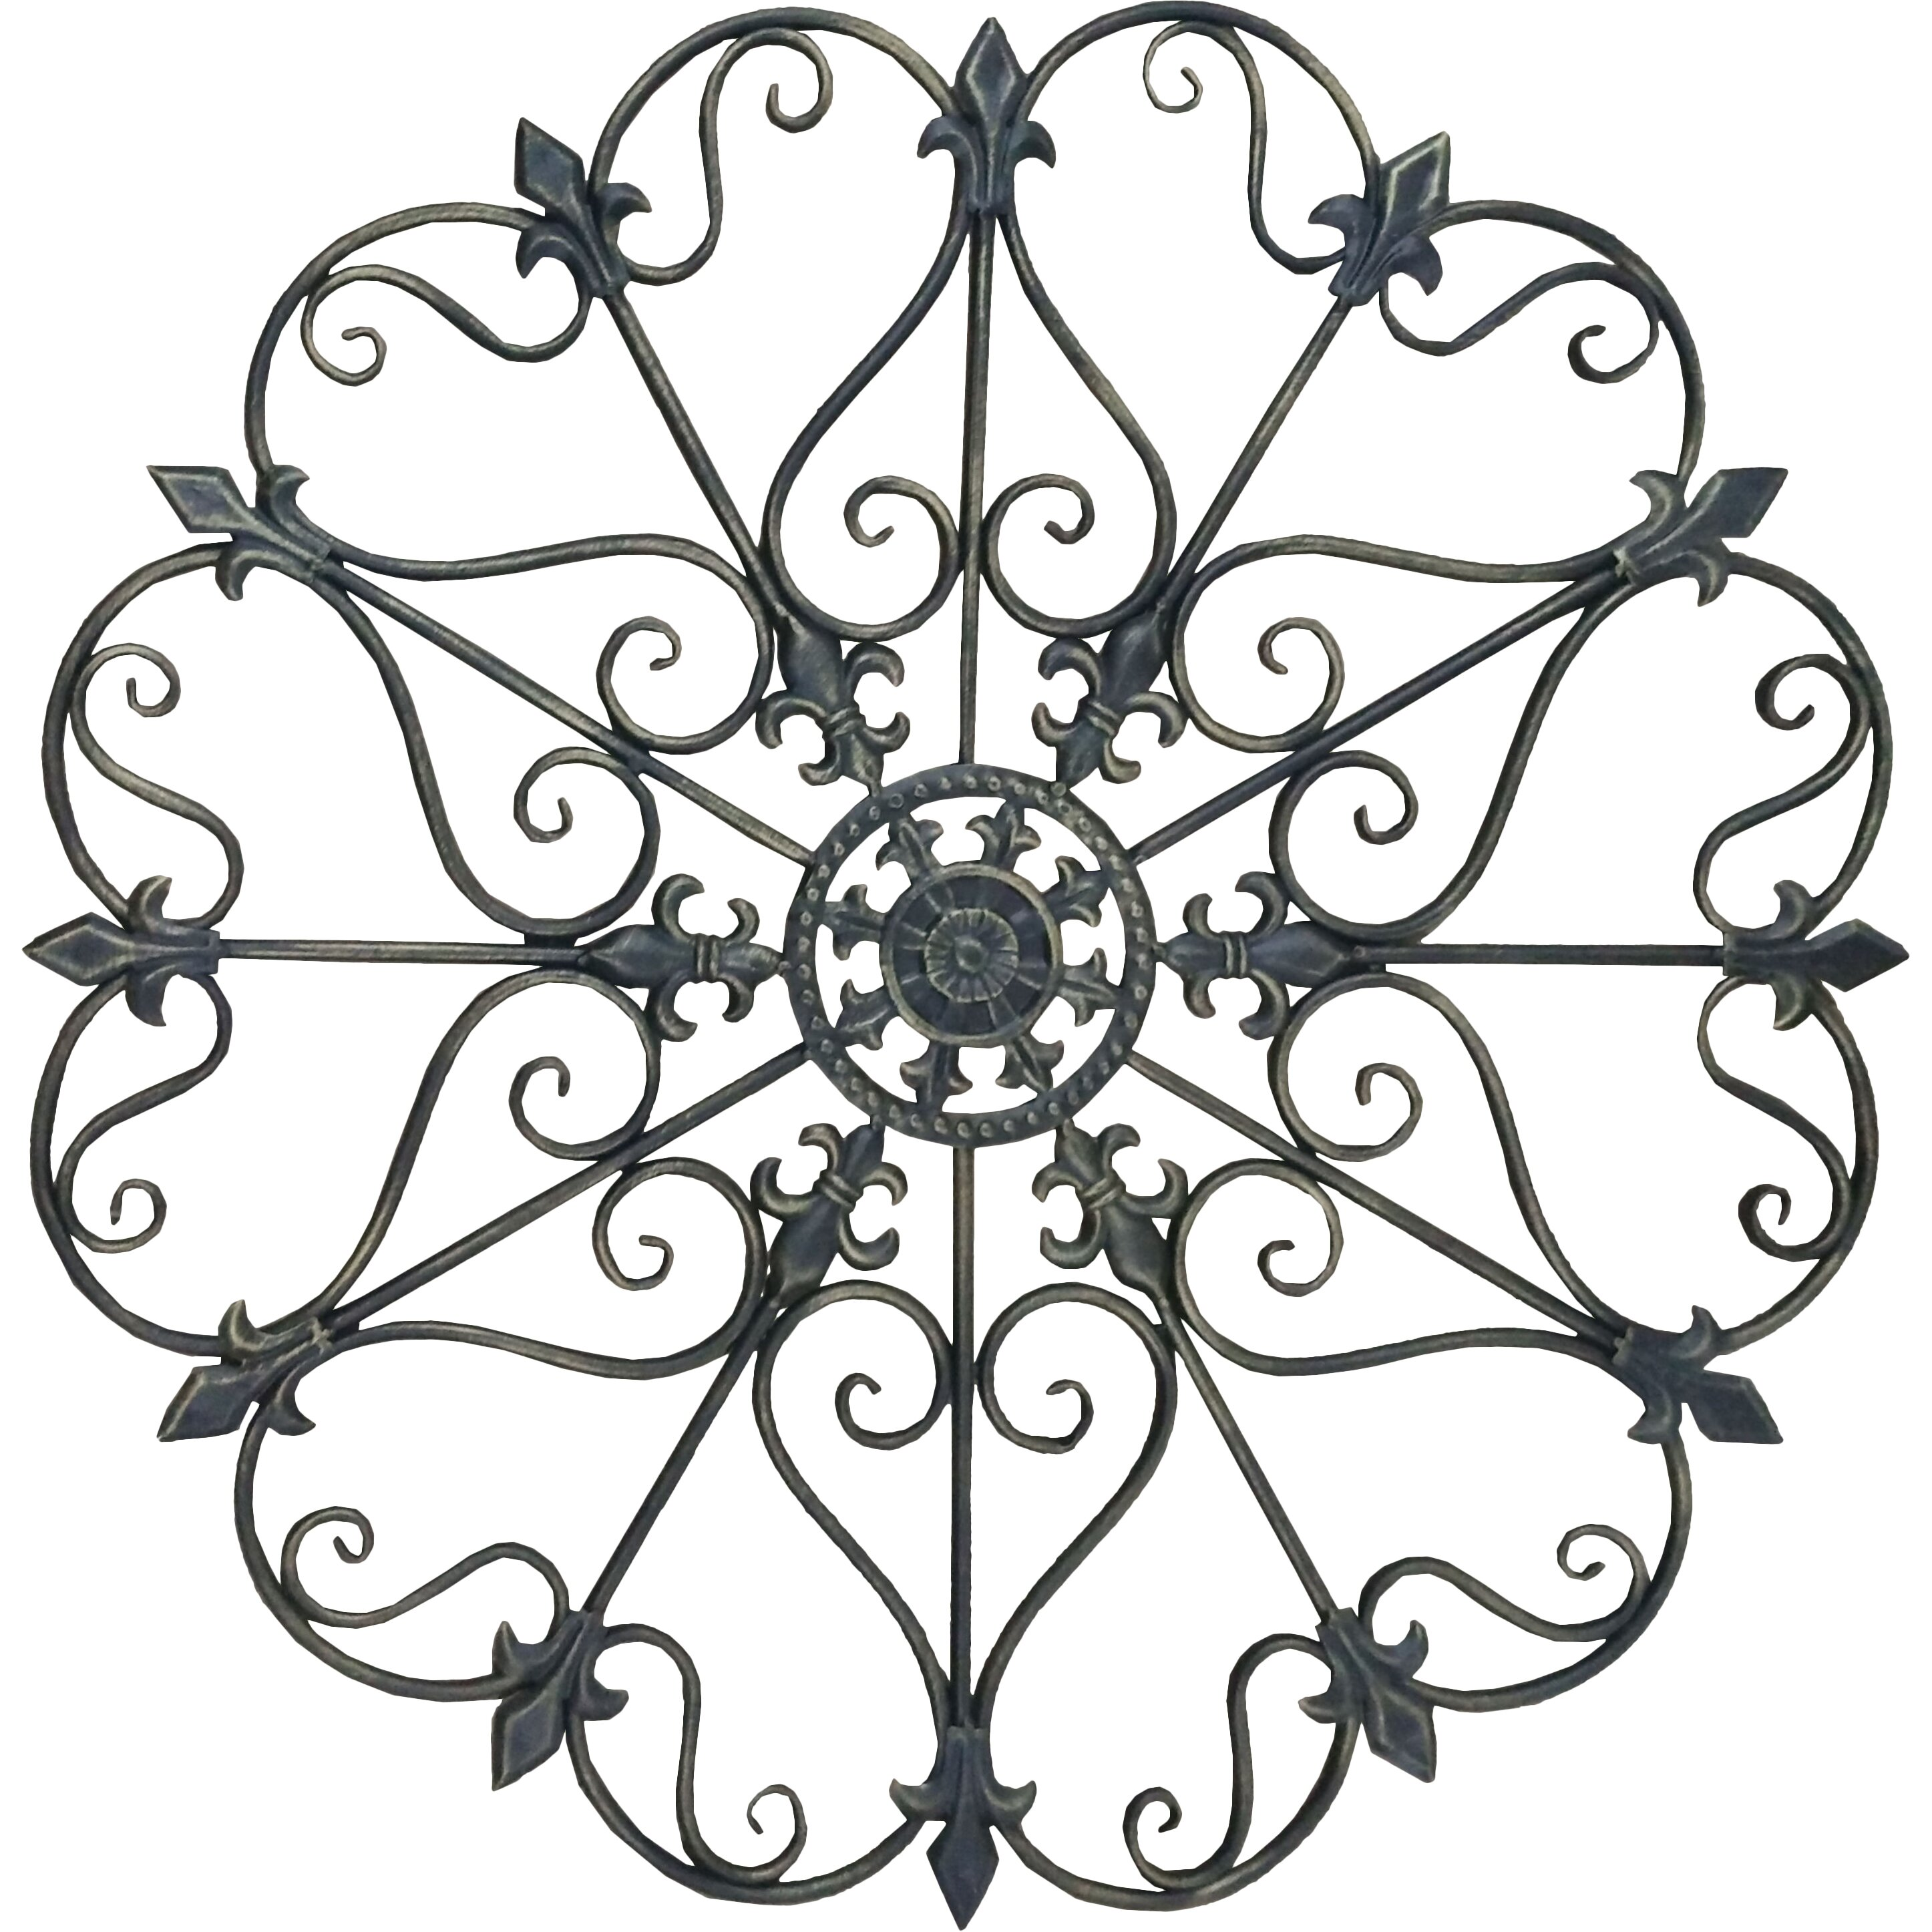 Wrought iron wall decorations for Wrought iron decorations home